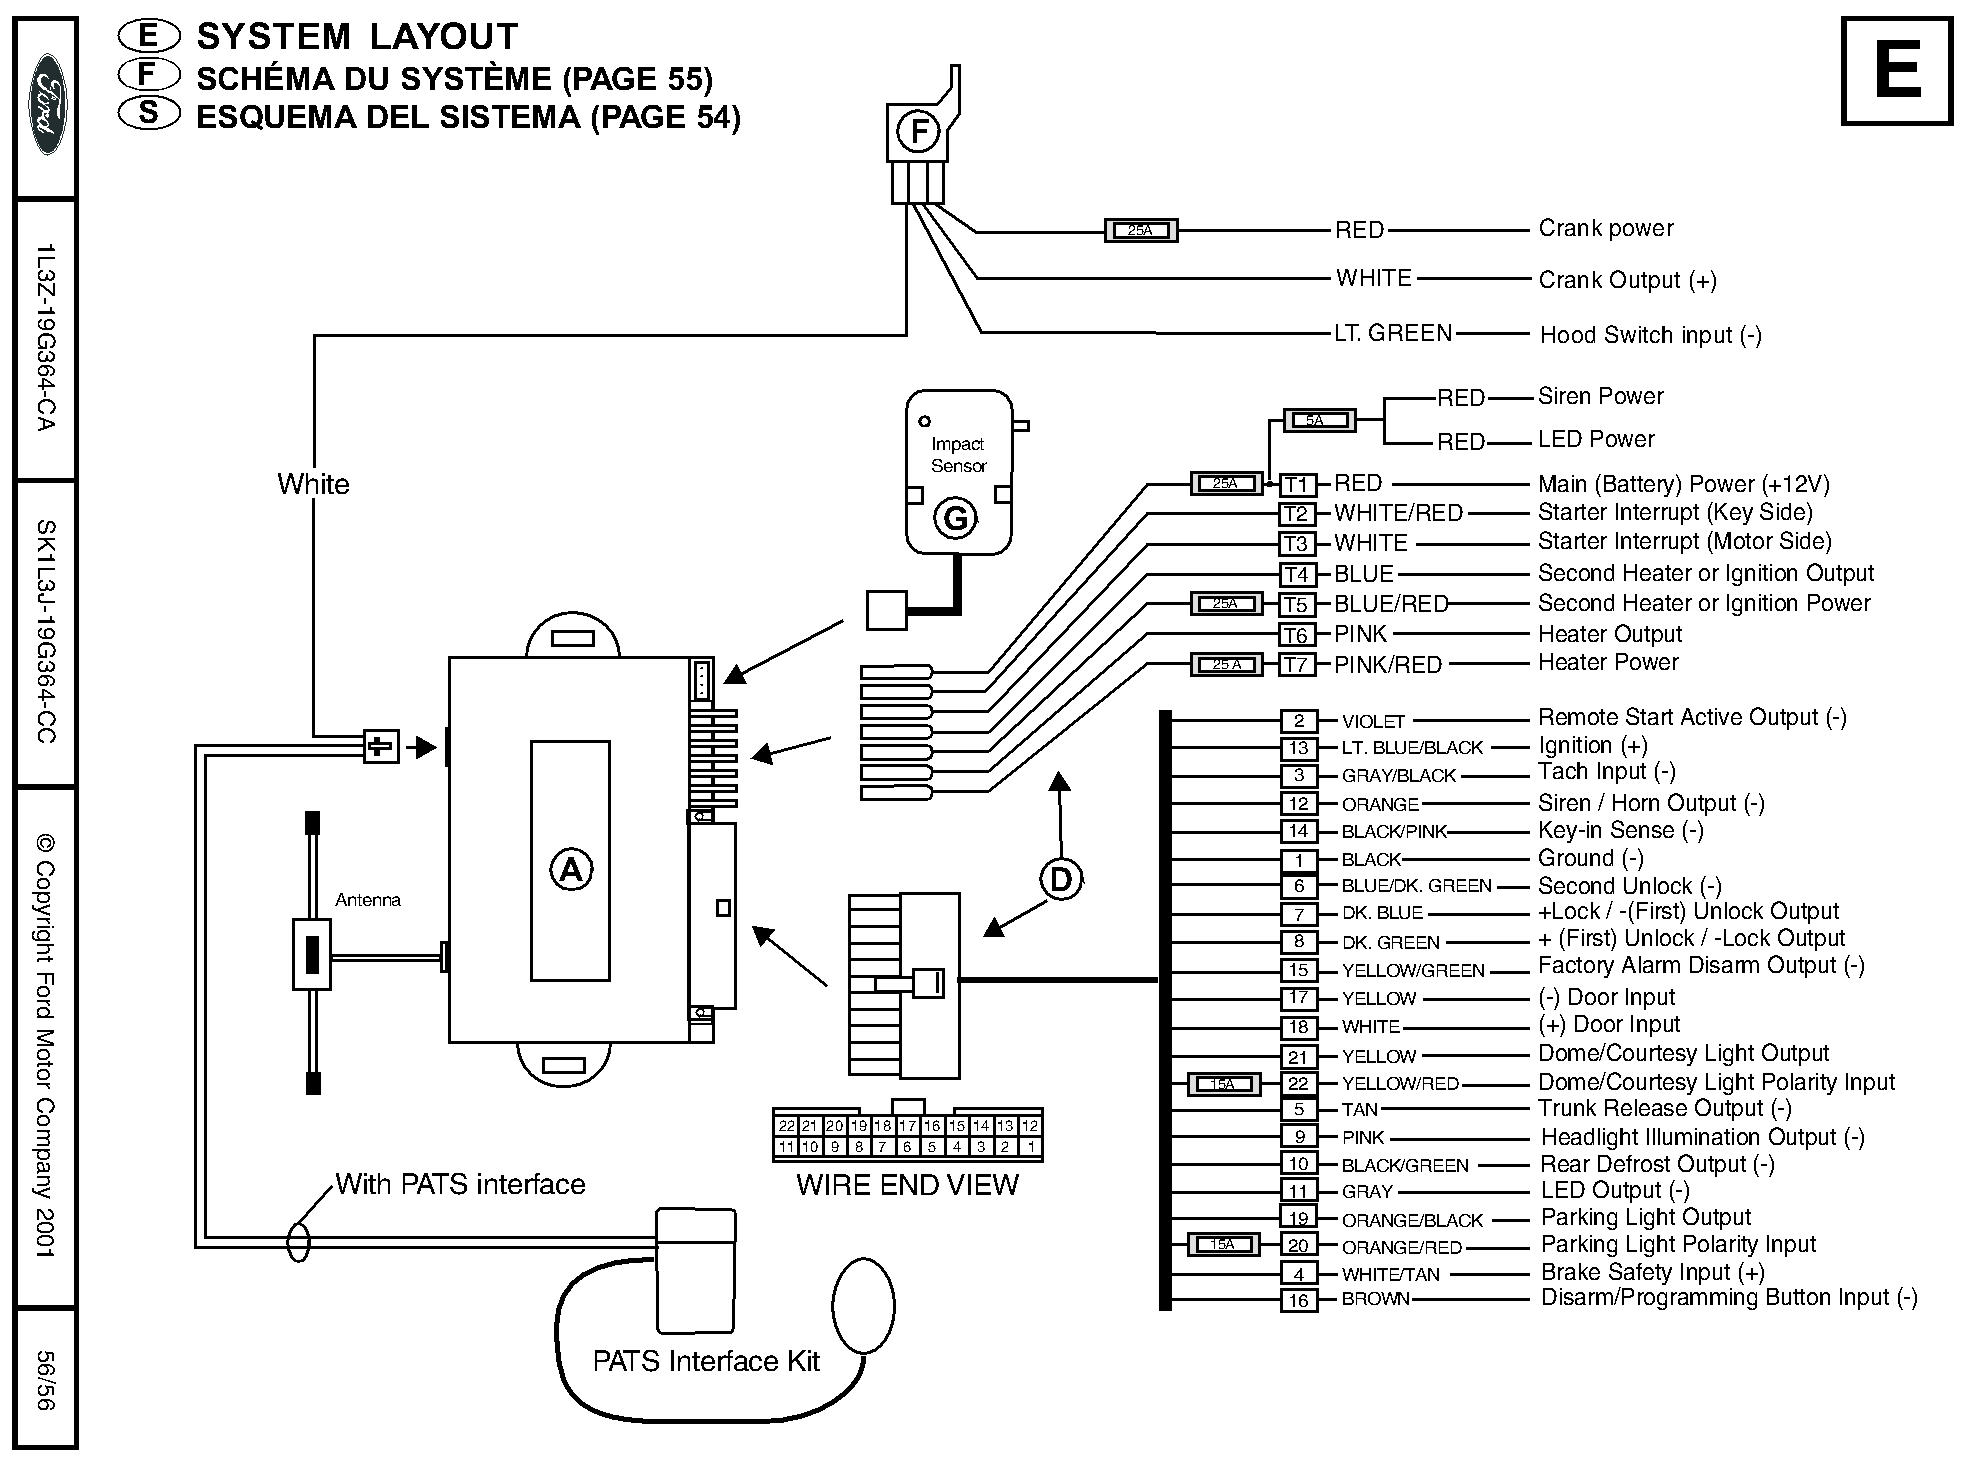 2002 Ford Explorer Blower Motor Diagram in addition 96 Mercury Grand Marquis Fuse Box furthermore Ford E 150 Questions Fuse Diagram For A 1993 Ford Econoline Van 2 likewise Fuse Diagram For 2000 Xjs Jeepforum Pertaining To Jeep  pass Fuse Box Diagram likewise 1997 Honda Civic Engine Wiring Diagram Honda Diagram Schematic With 1997 Honda Crv Cooling System Diagram. on 1997 mercury grand marquis fuse box